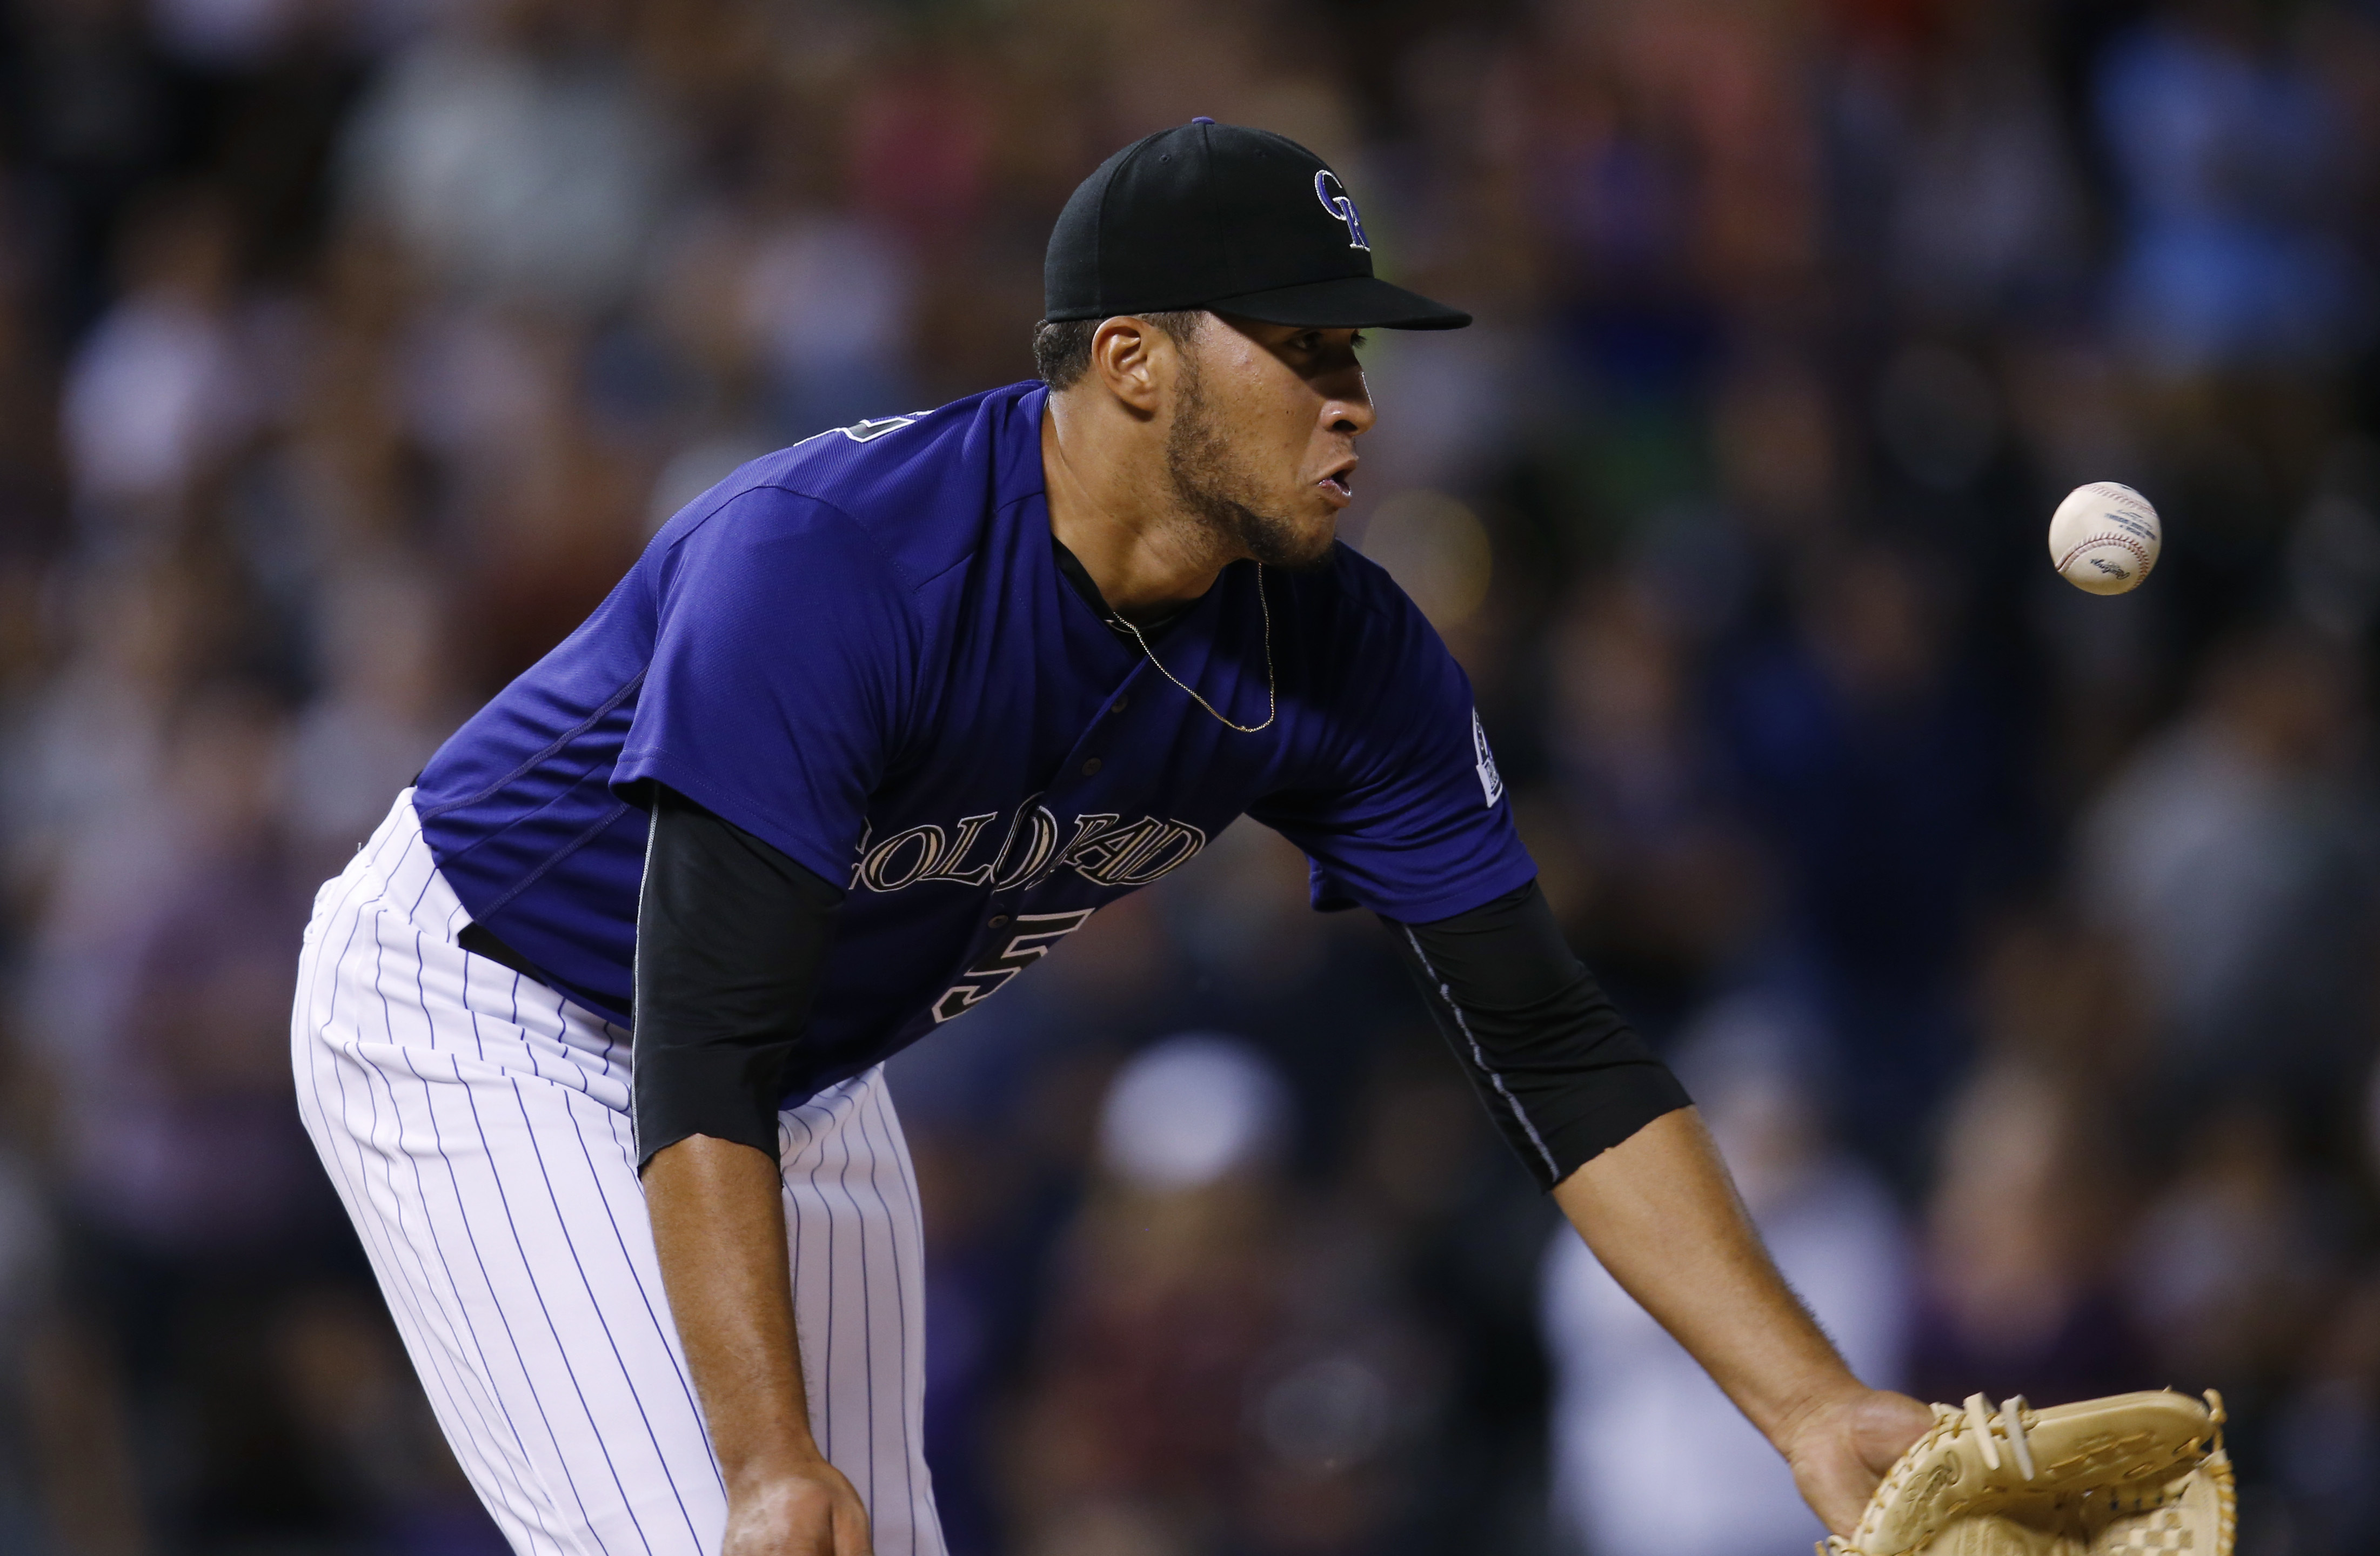 Colorado Rockies relief pitcher Carlos Estevez reaches out to field ground ball hit by Tampa Bay Rays' Logan Forsythe for the final out in the ninth inning of a baseball game Monday, July 18, 2016 in Denver. The Rockies won 7-4. (AP Photo/David Zalubowski